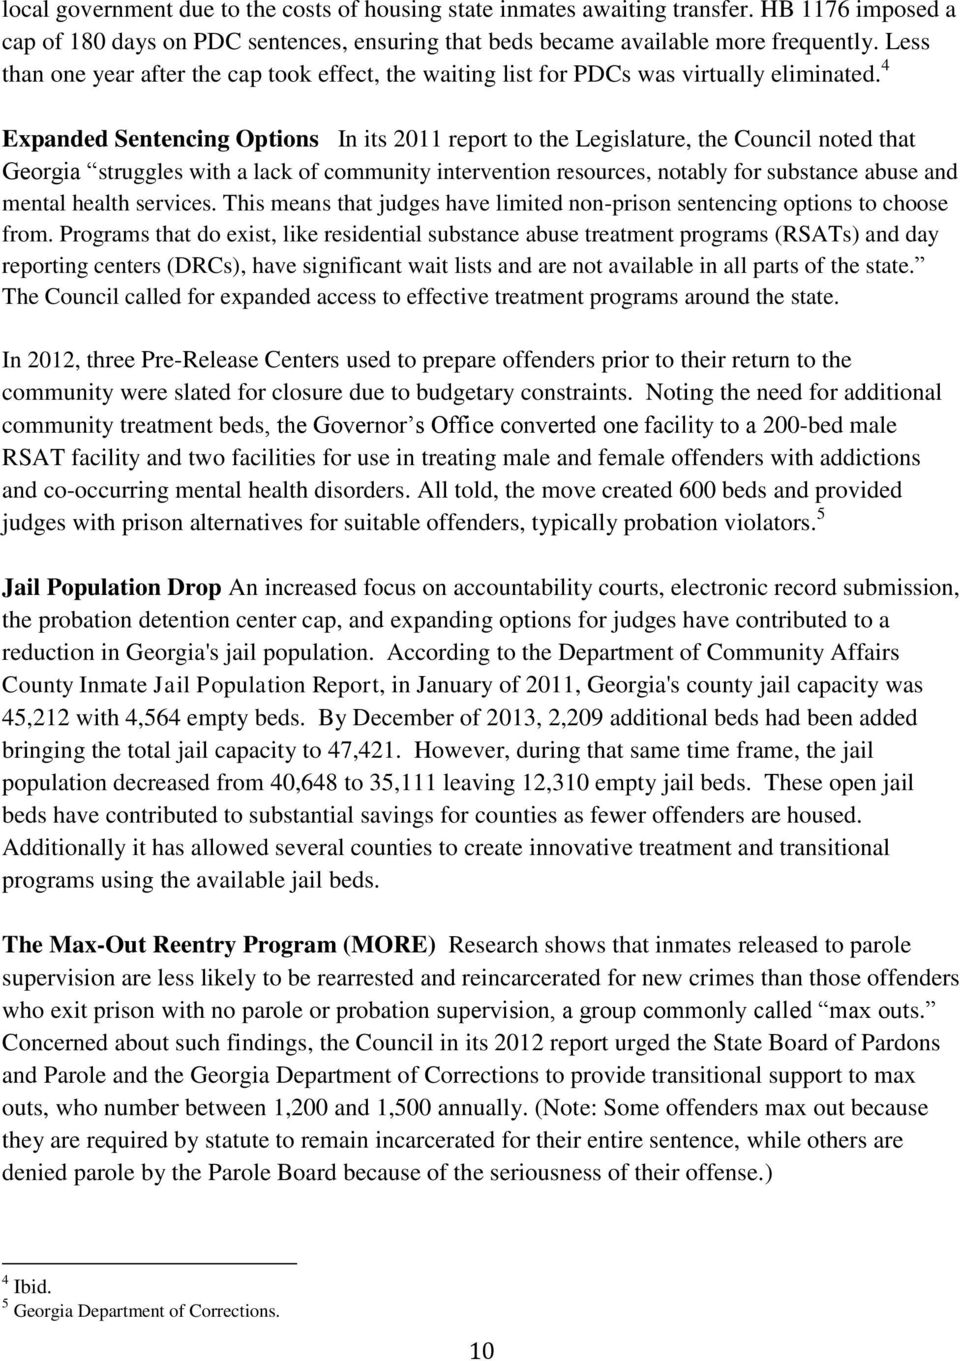 4 Expanded Sentencing Options In its 2011 report to the Legislature, the Council noted that Georgia struggles with a lack of community intervention resources, notably for substance abuse and mental